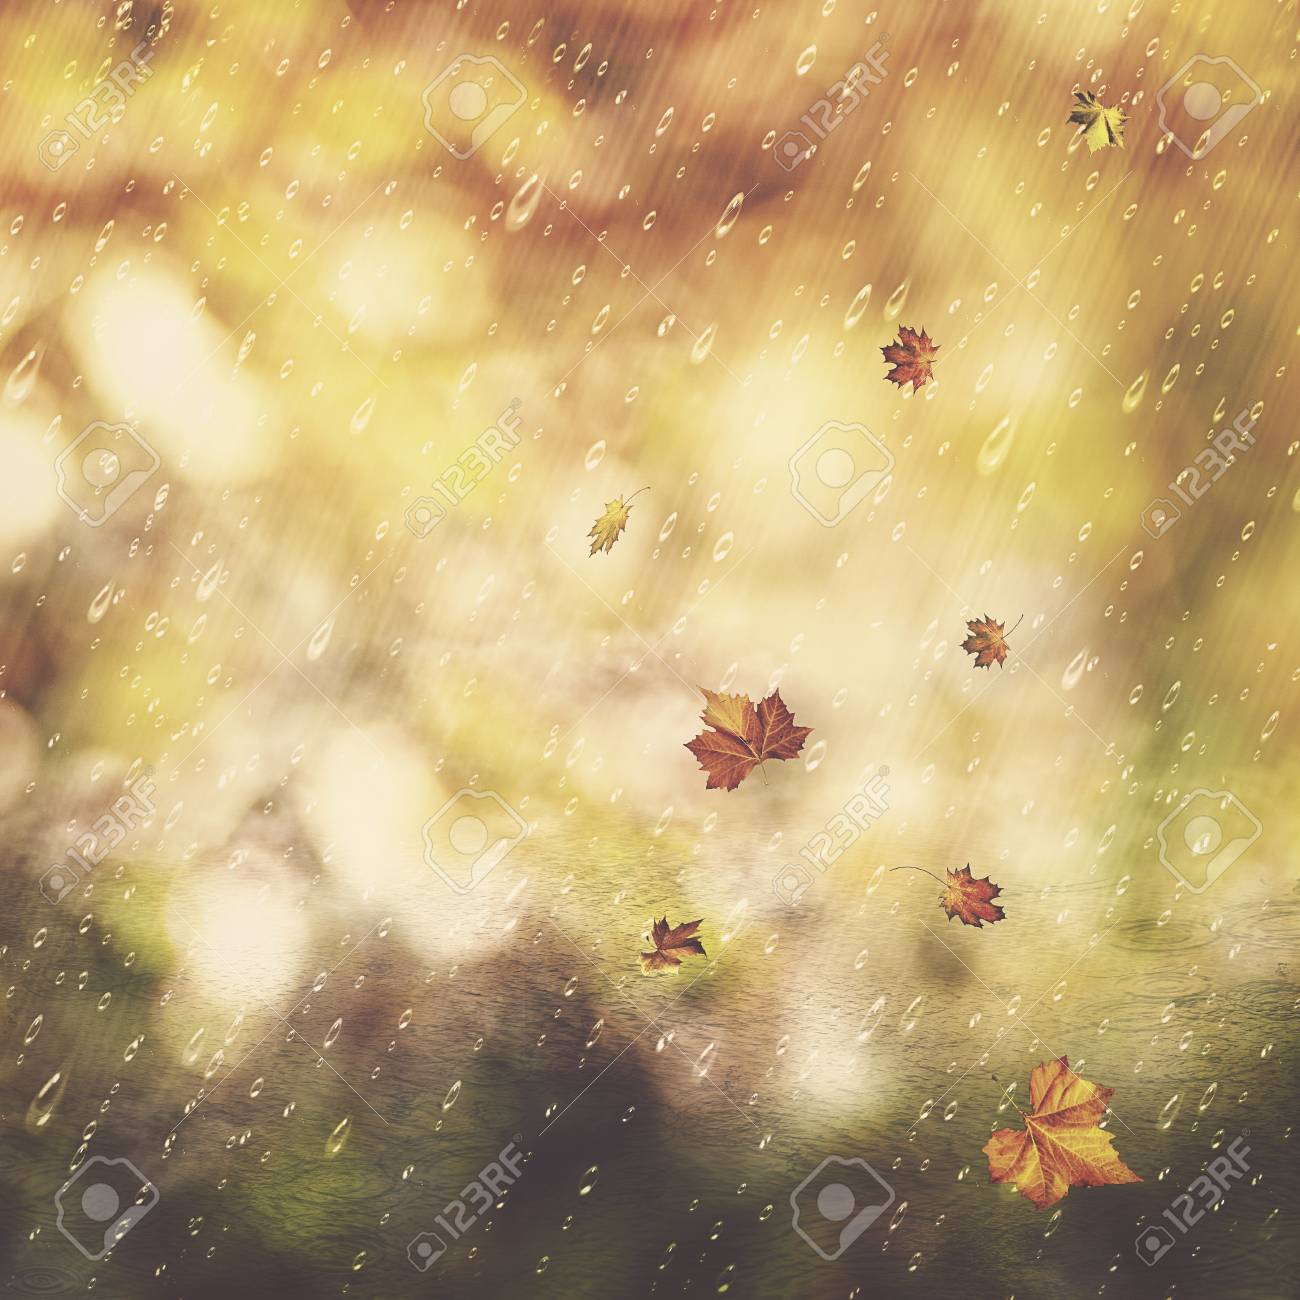 autumn rain abstract seasonal backgrounds with fall and water